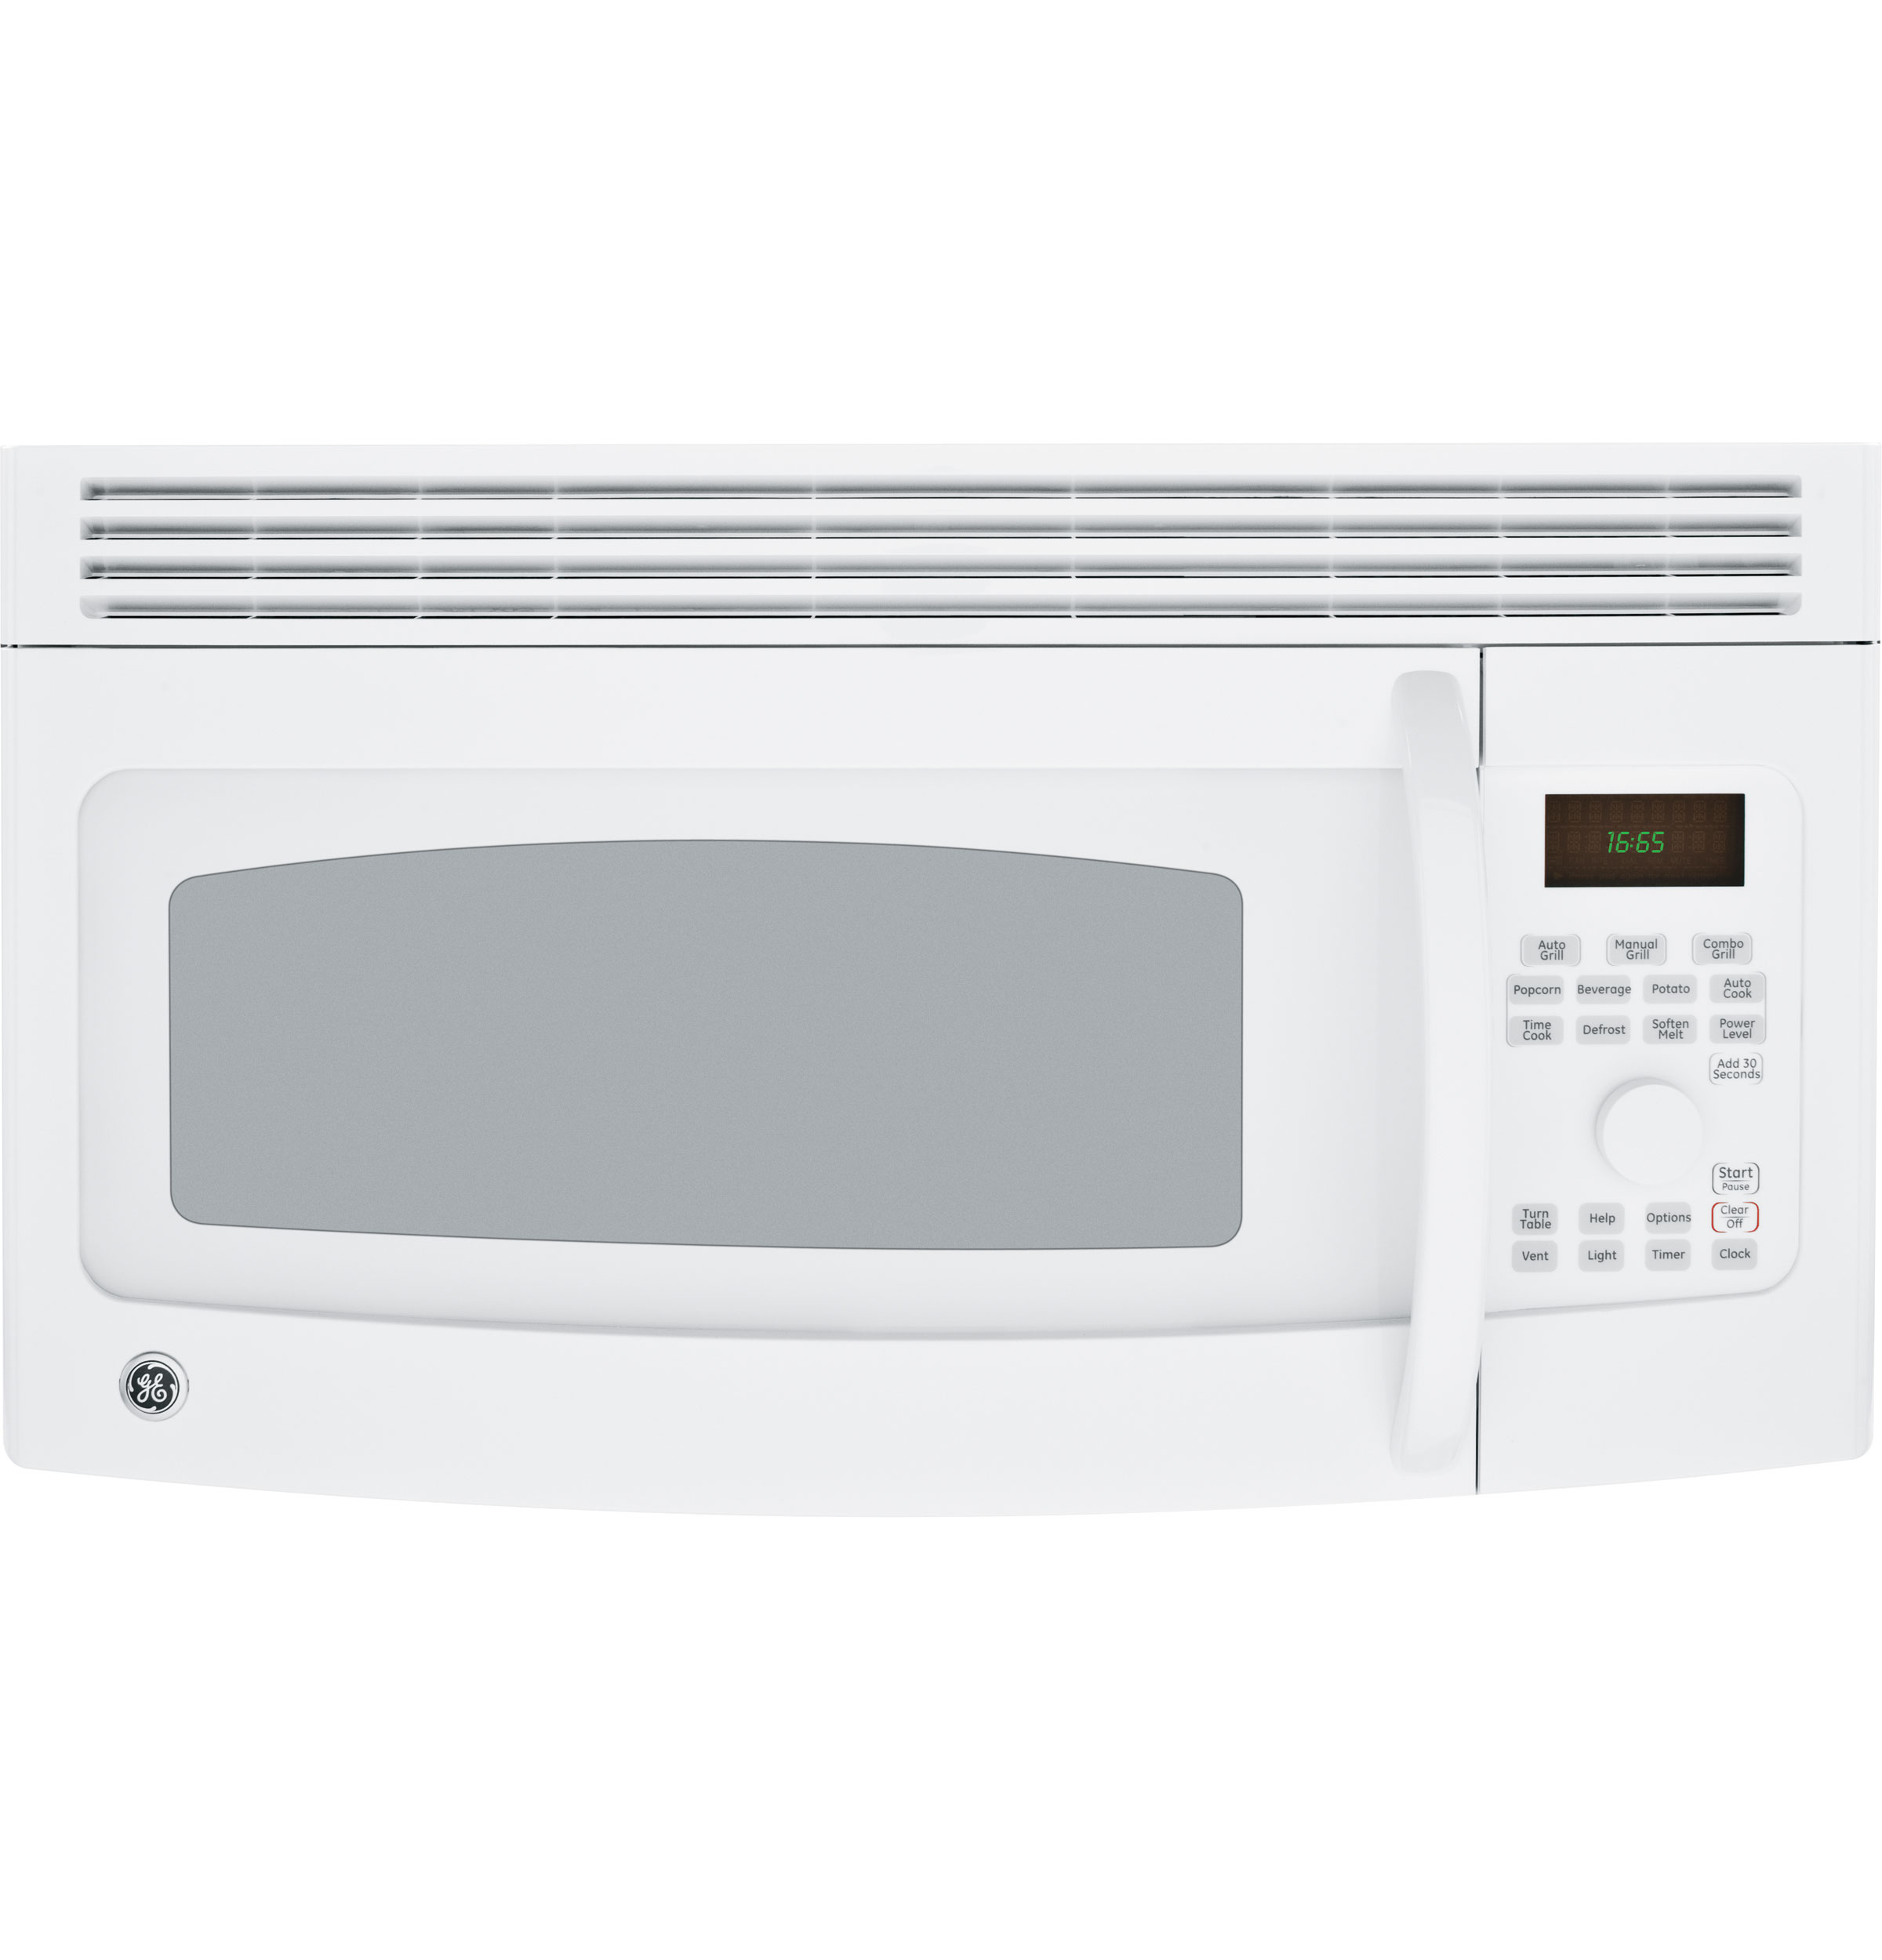 Ge Spacemaker 174 Grilling Over The Range Microwave Oven